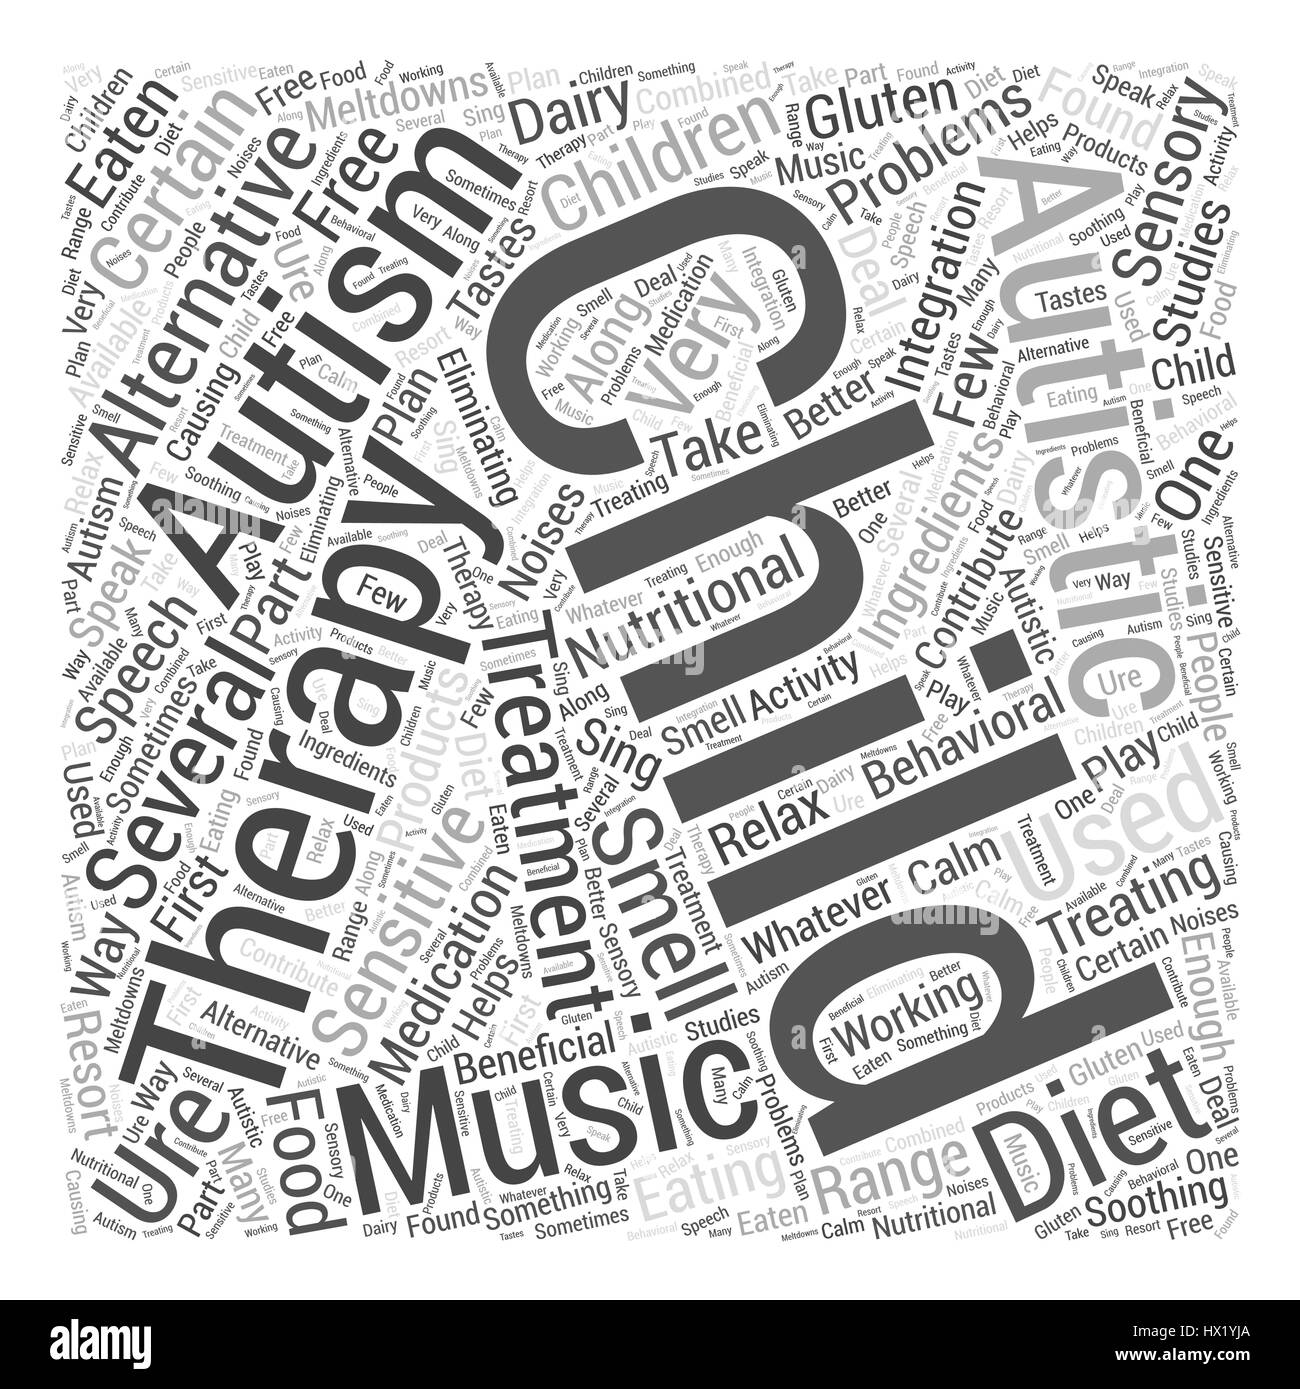 Alternative Treatments for Autism Word Cloud Concept - Stock Vector